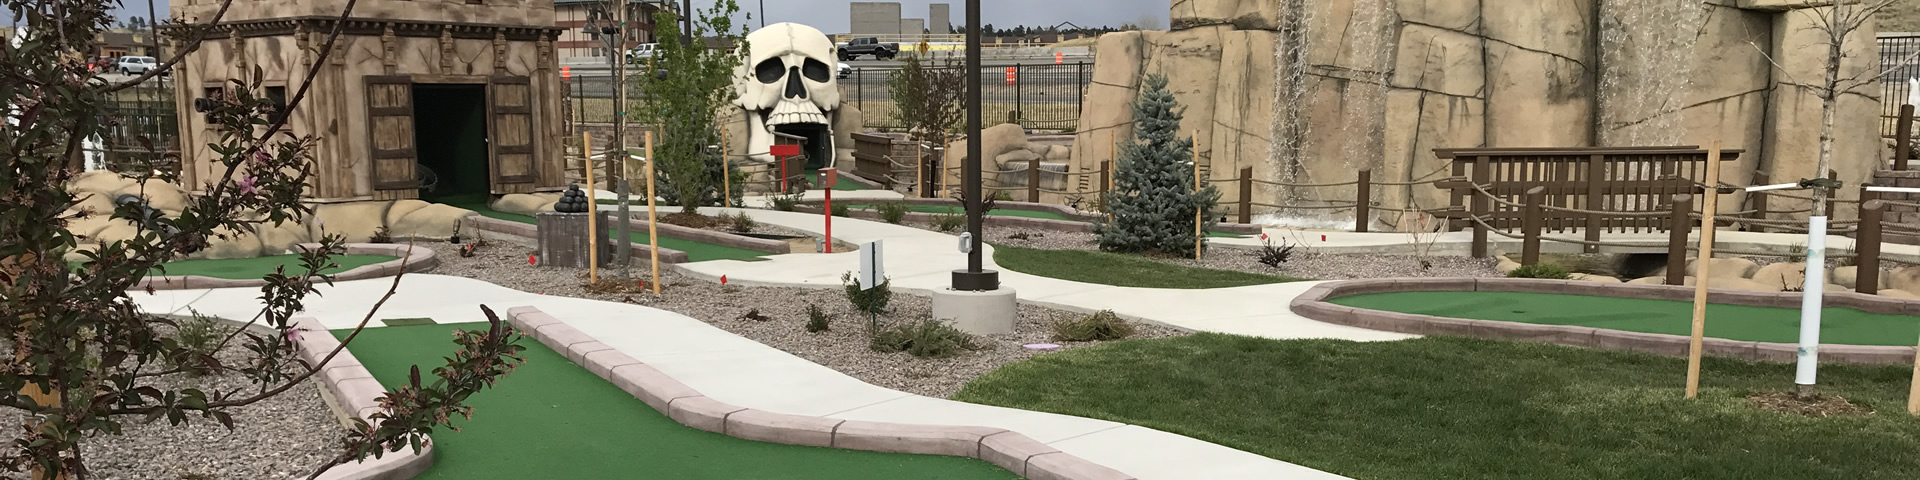 Mini Golf | profitable and fun entertainment industry | Benefits Miniature Golf Course Design Companies Html on